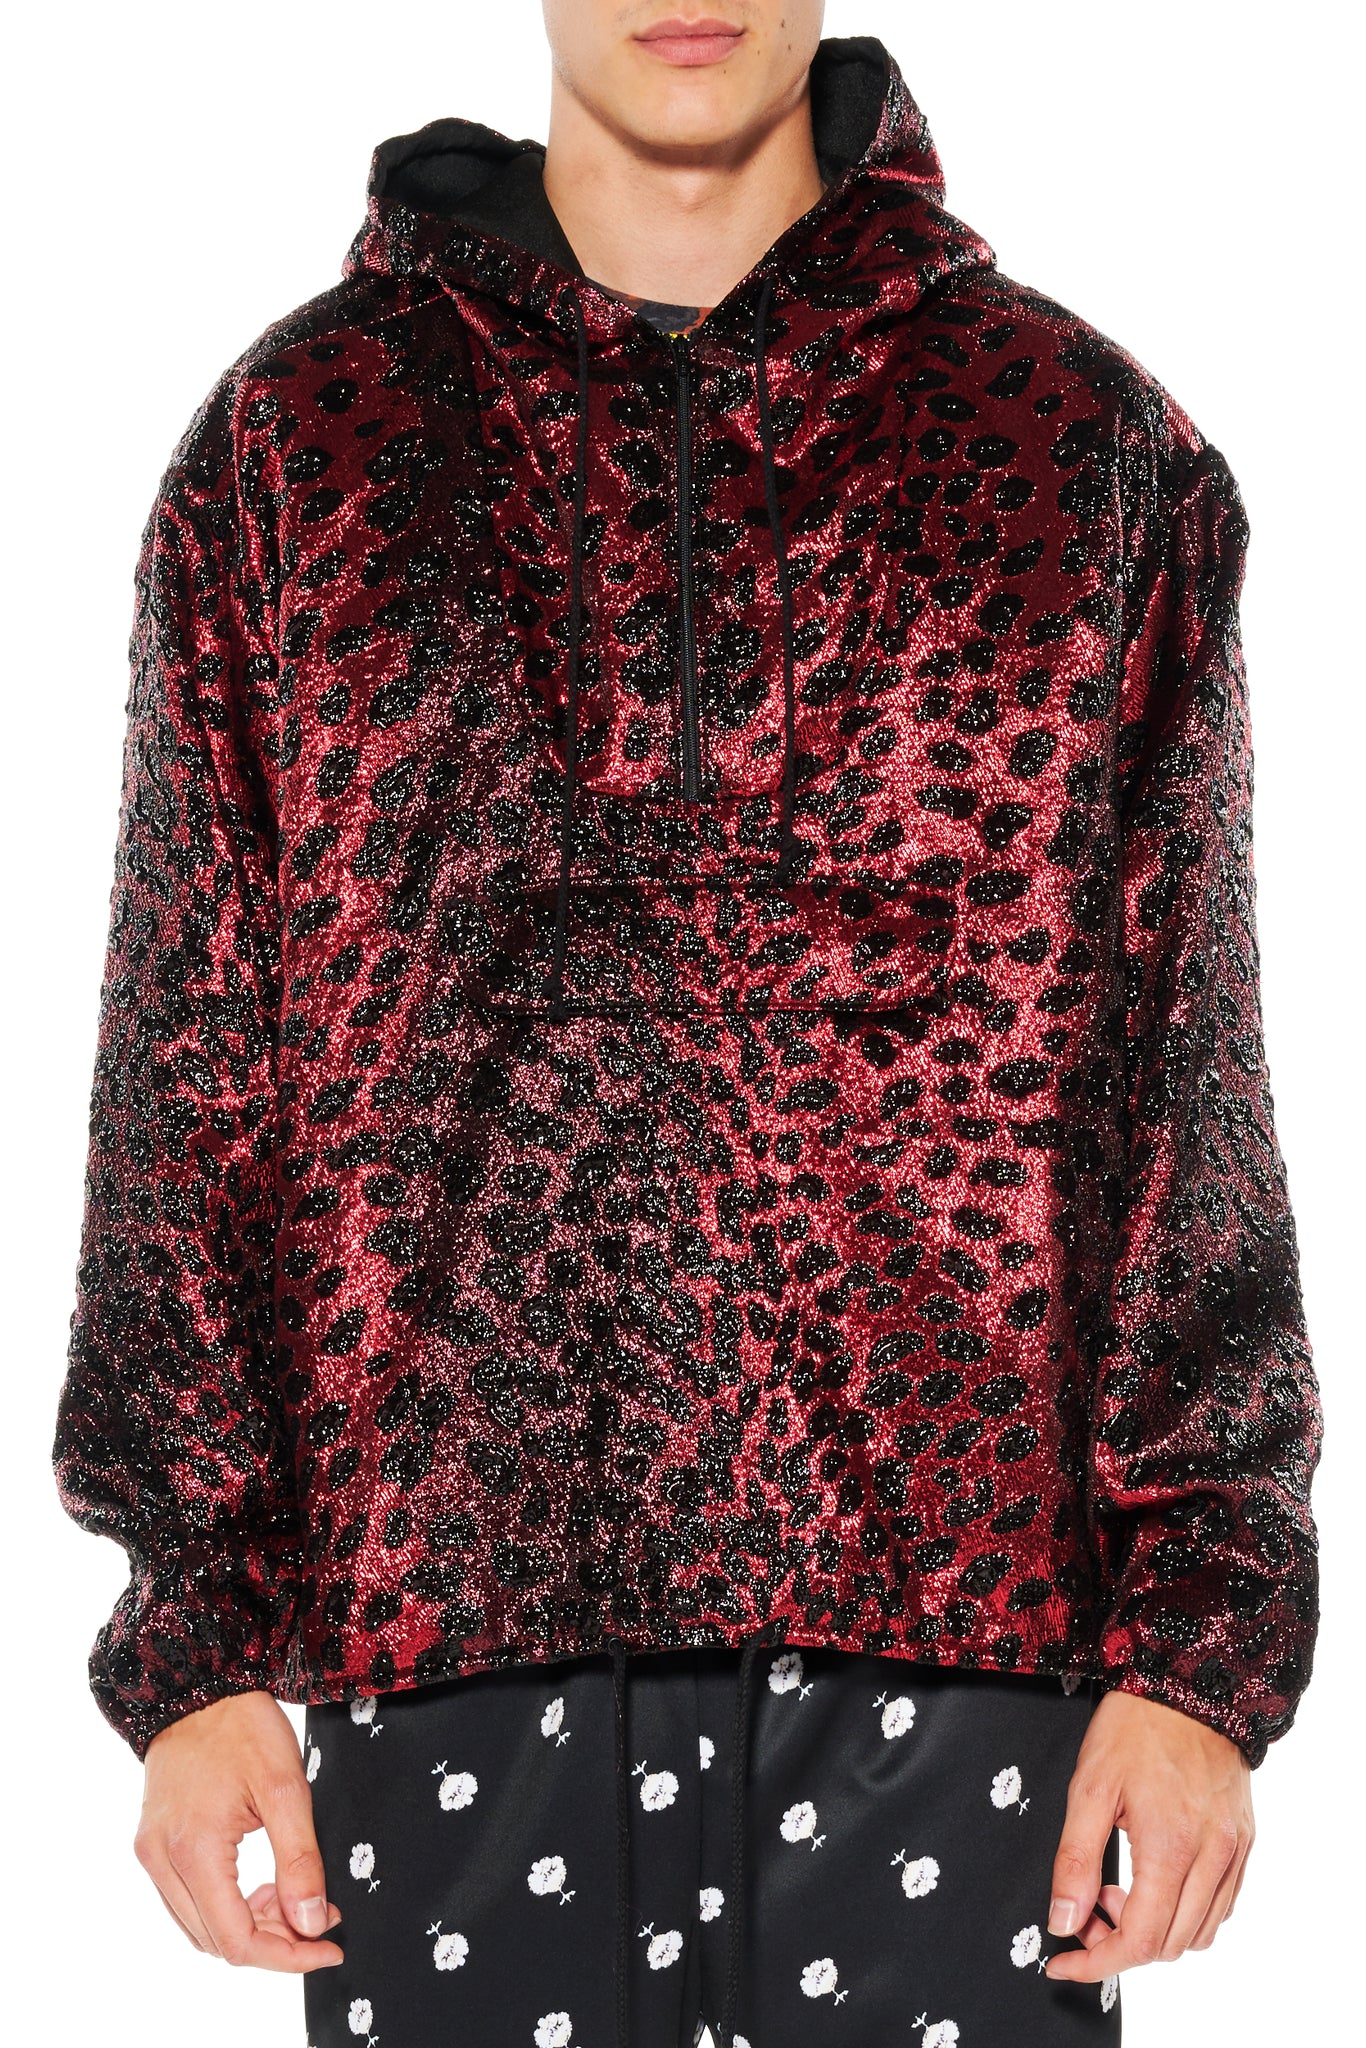 """NIGHT LEOPARD"" ANORAK - Men's Jackets & Coats - Libertine"